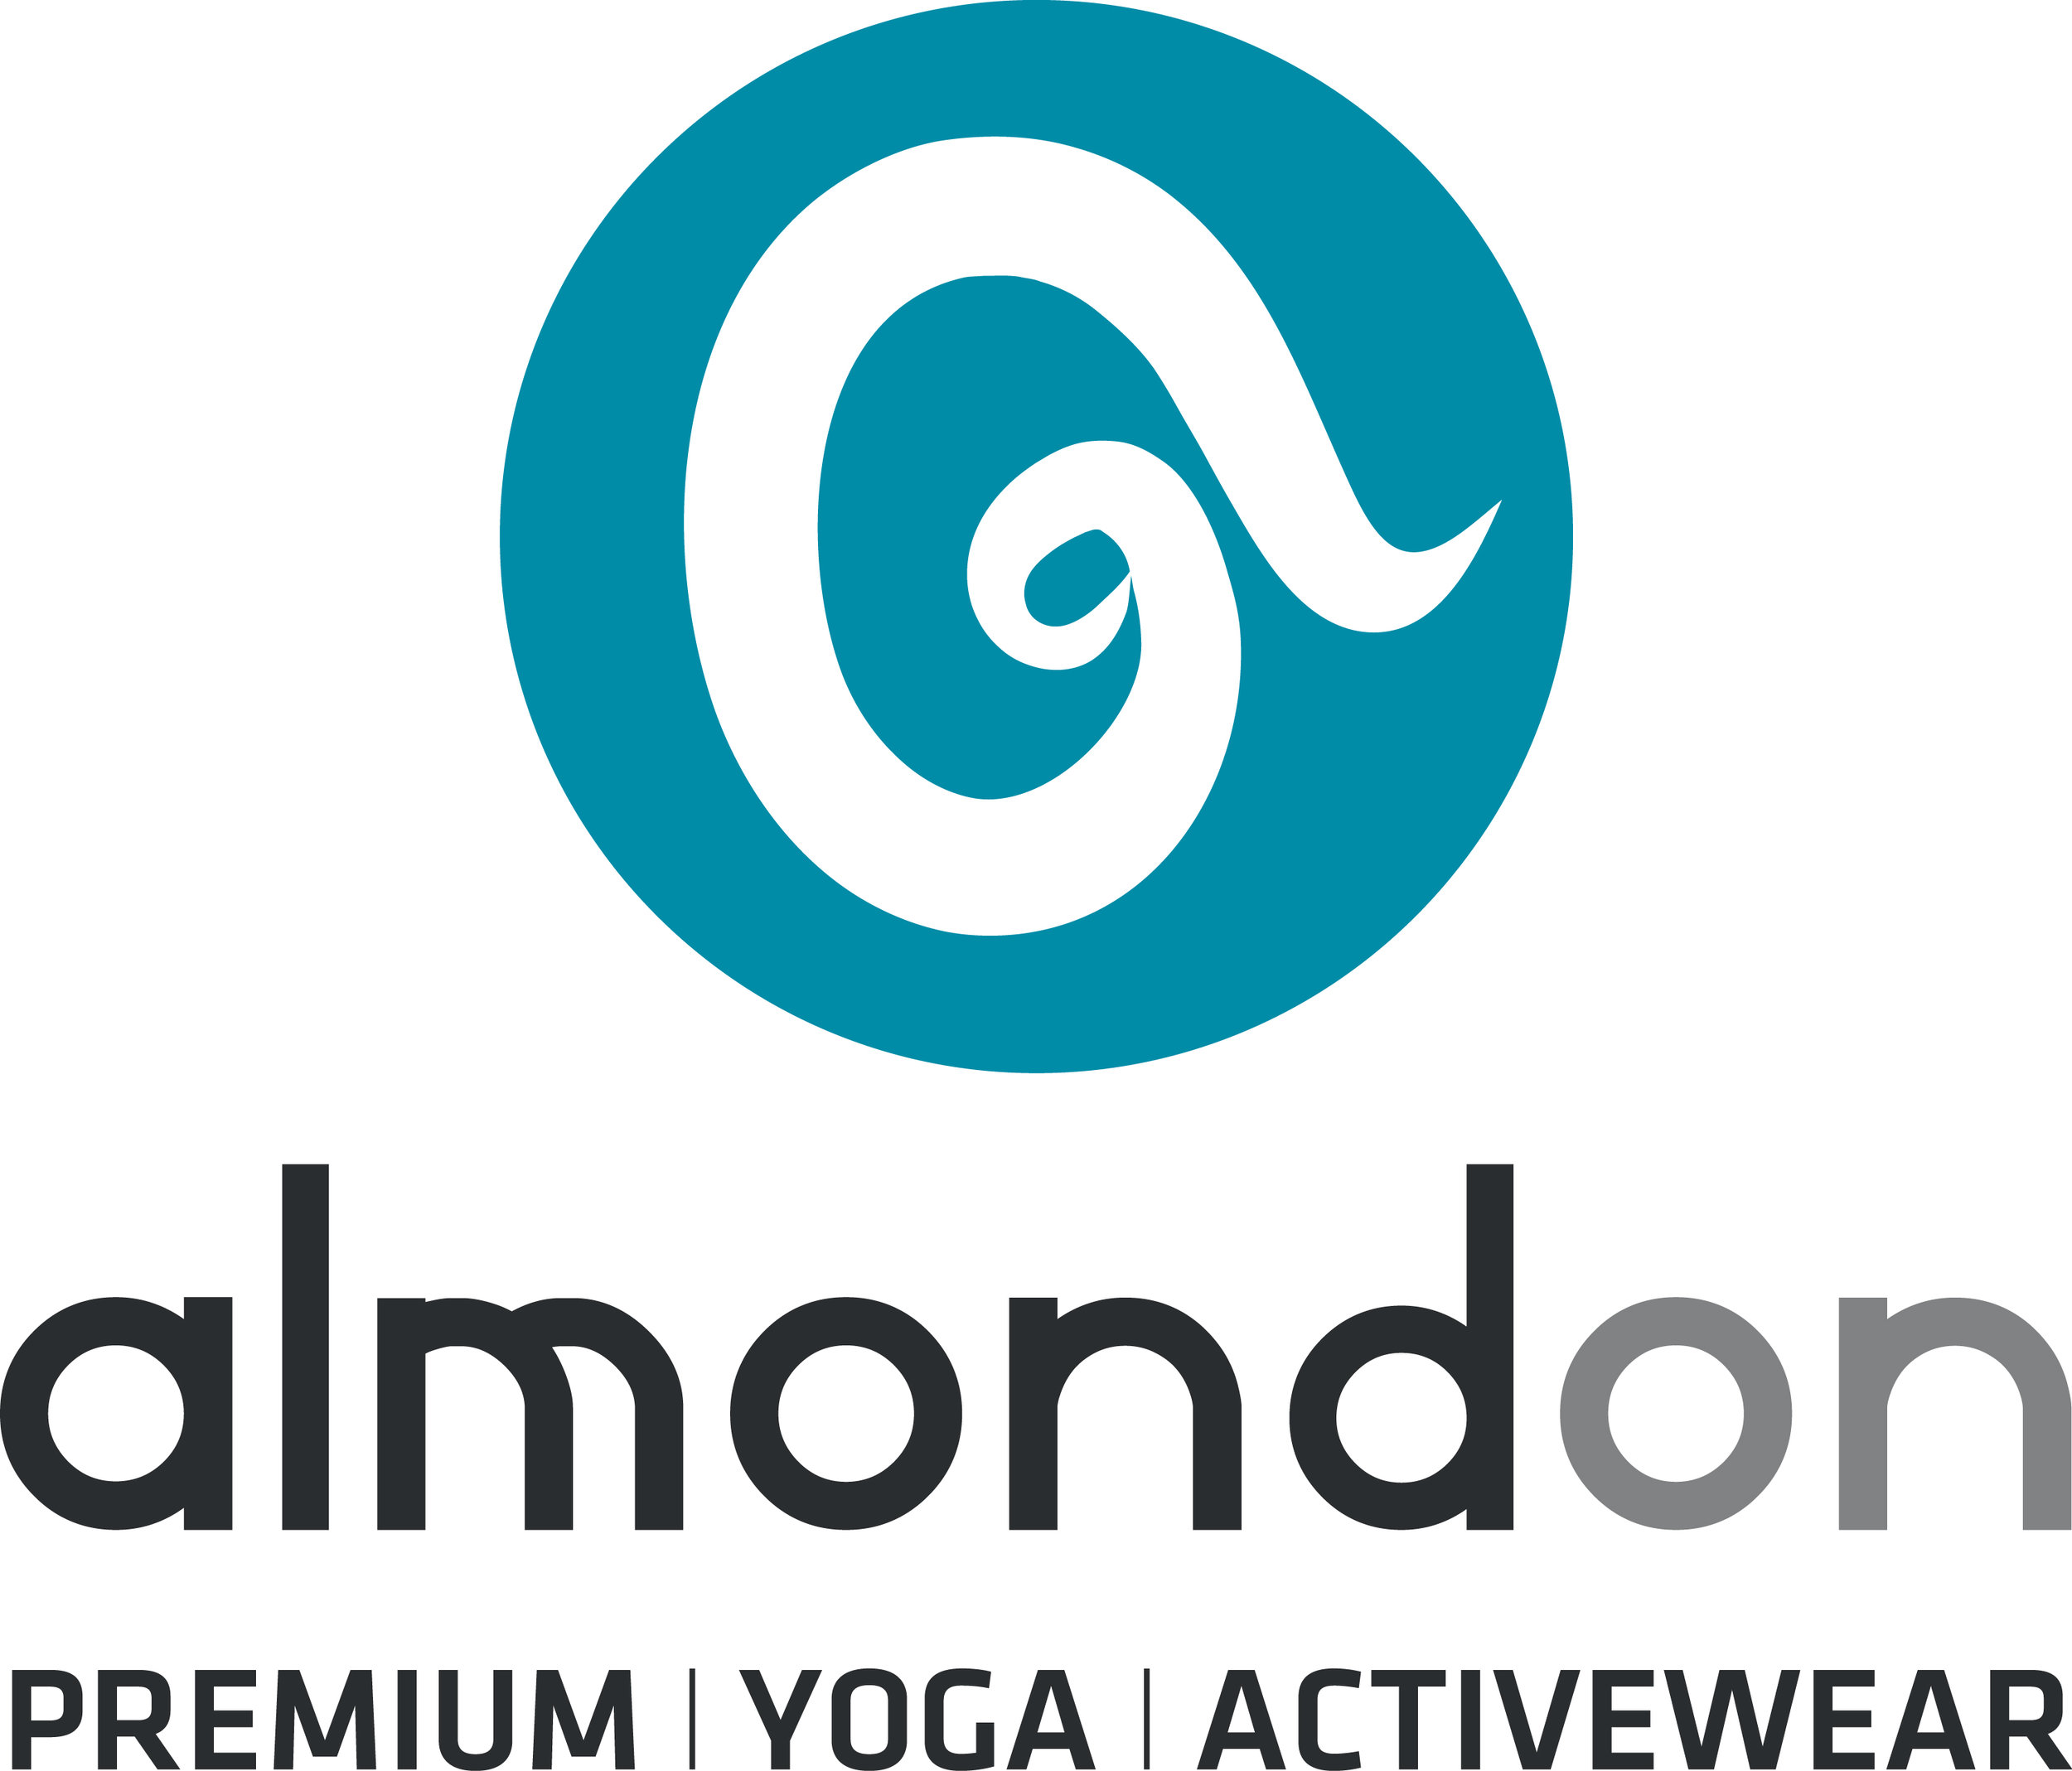 Almondon_LOGO for LYB Festival.jpg